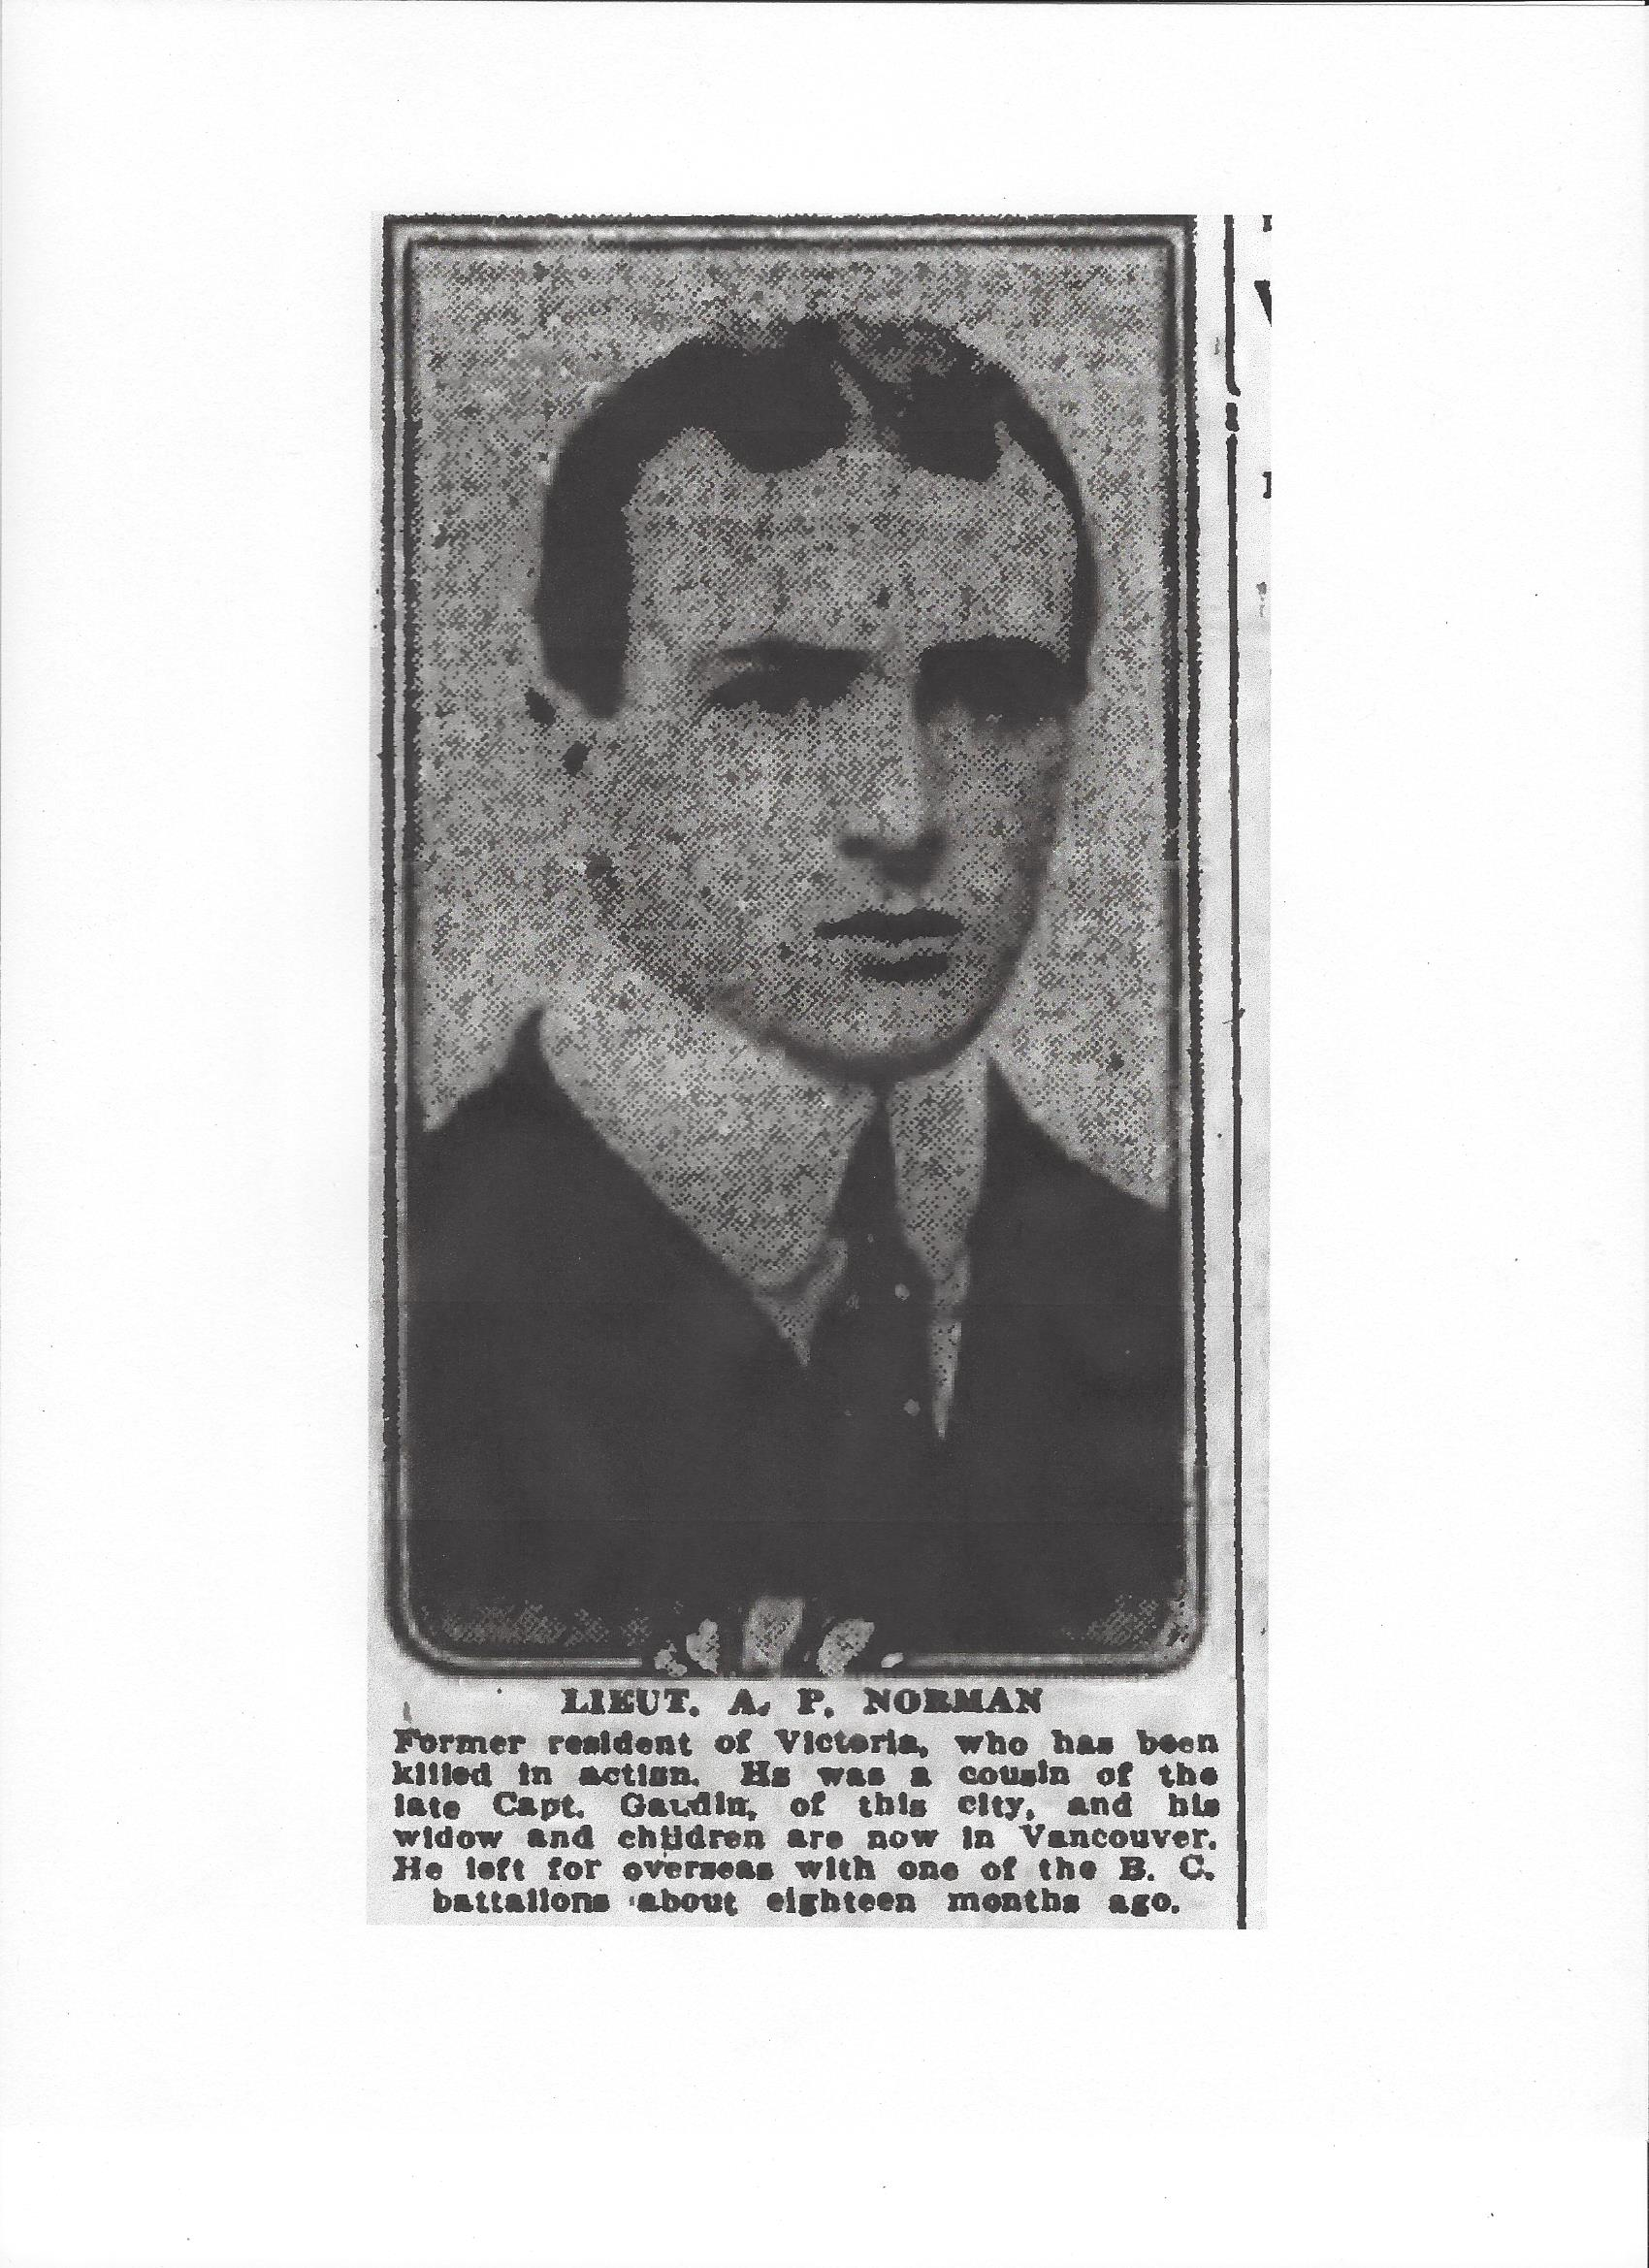 Newspaper clipping– From the Daily Colonist of April 20, 1917.